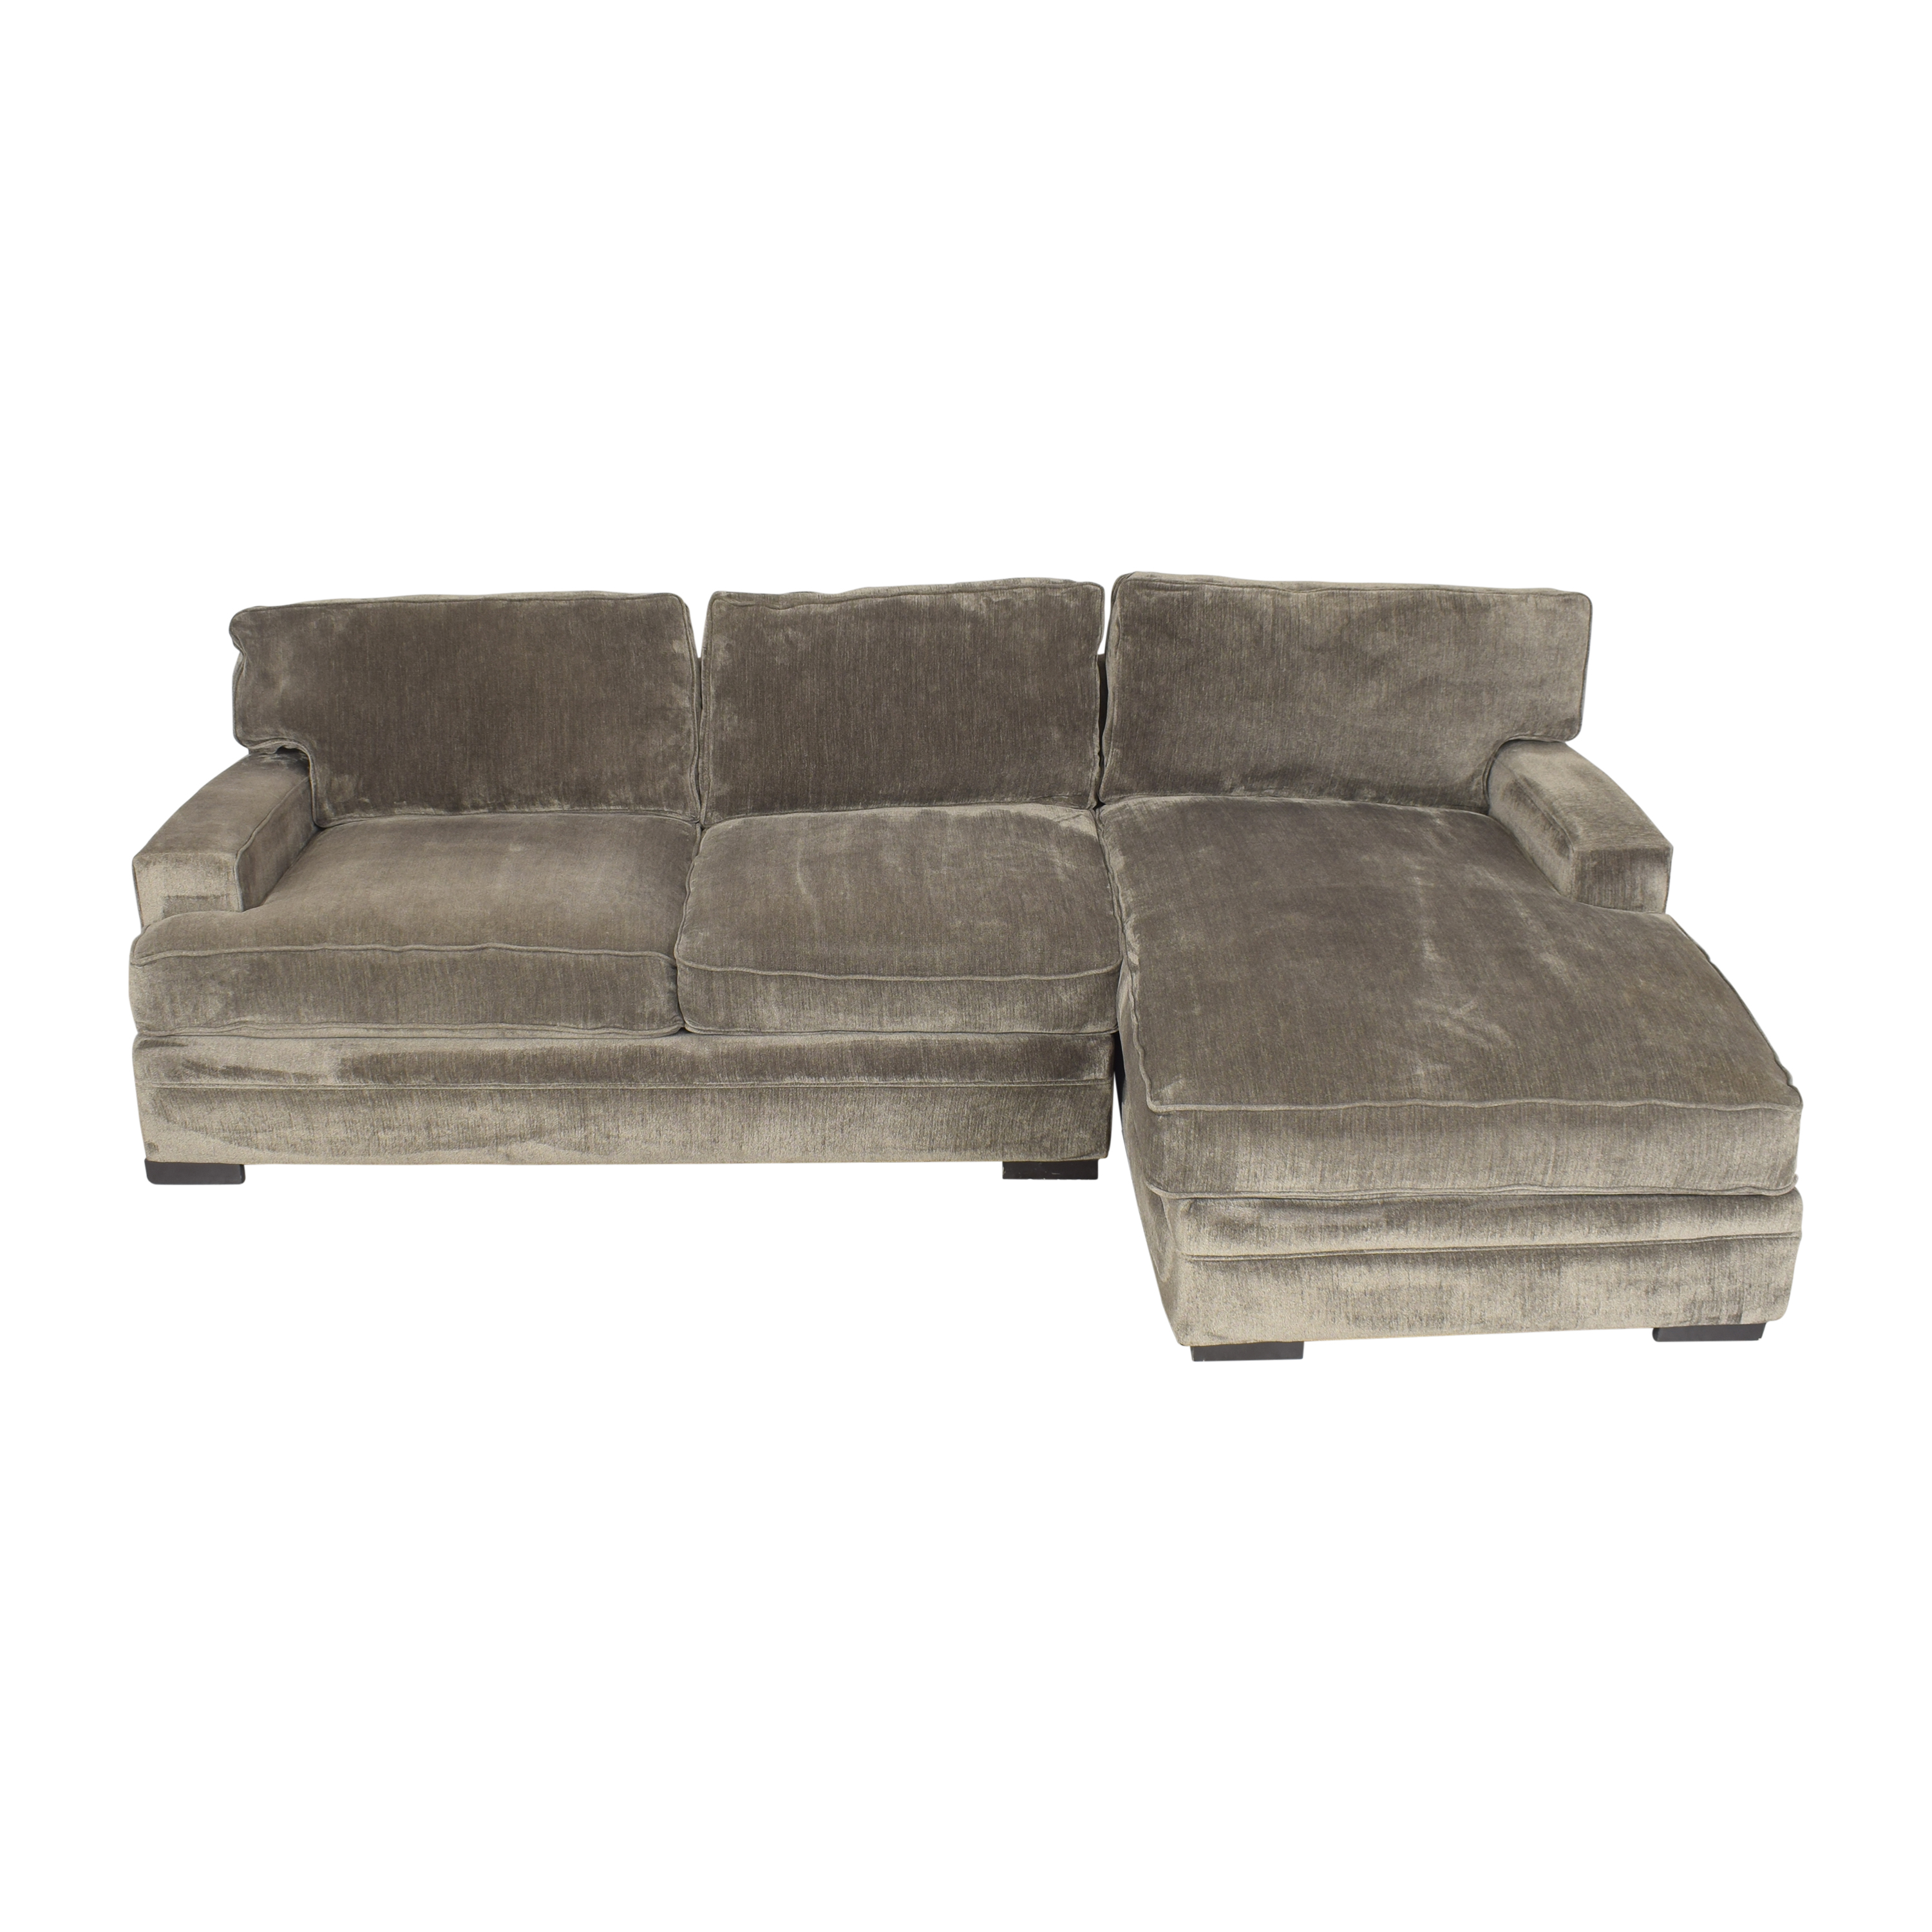 Macy's Rhyder Two Piece Sectional Sofa / Sectionals